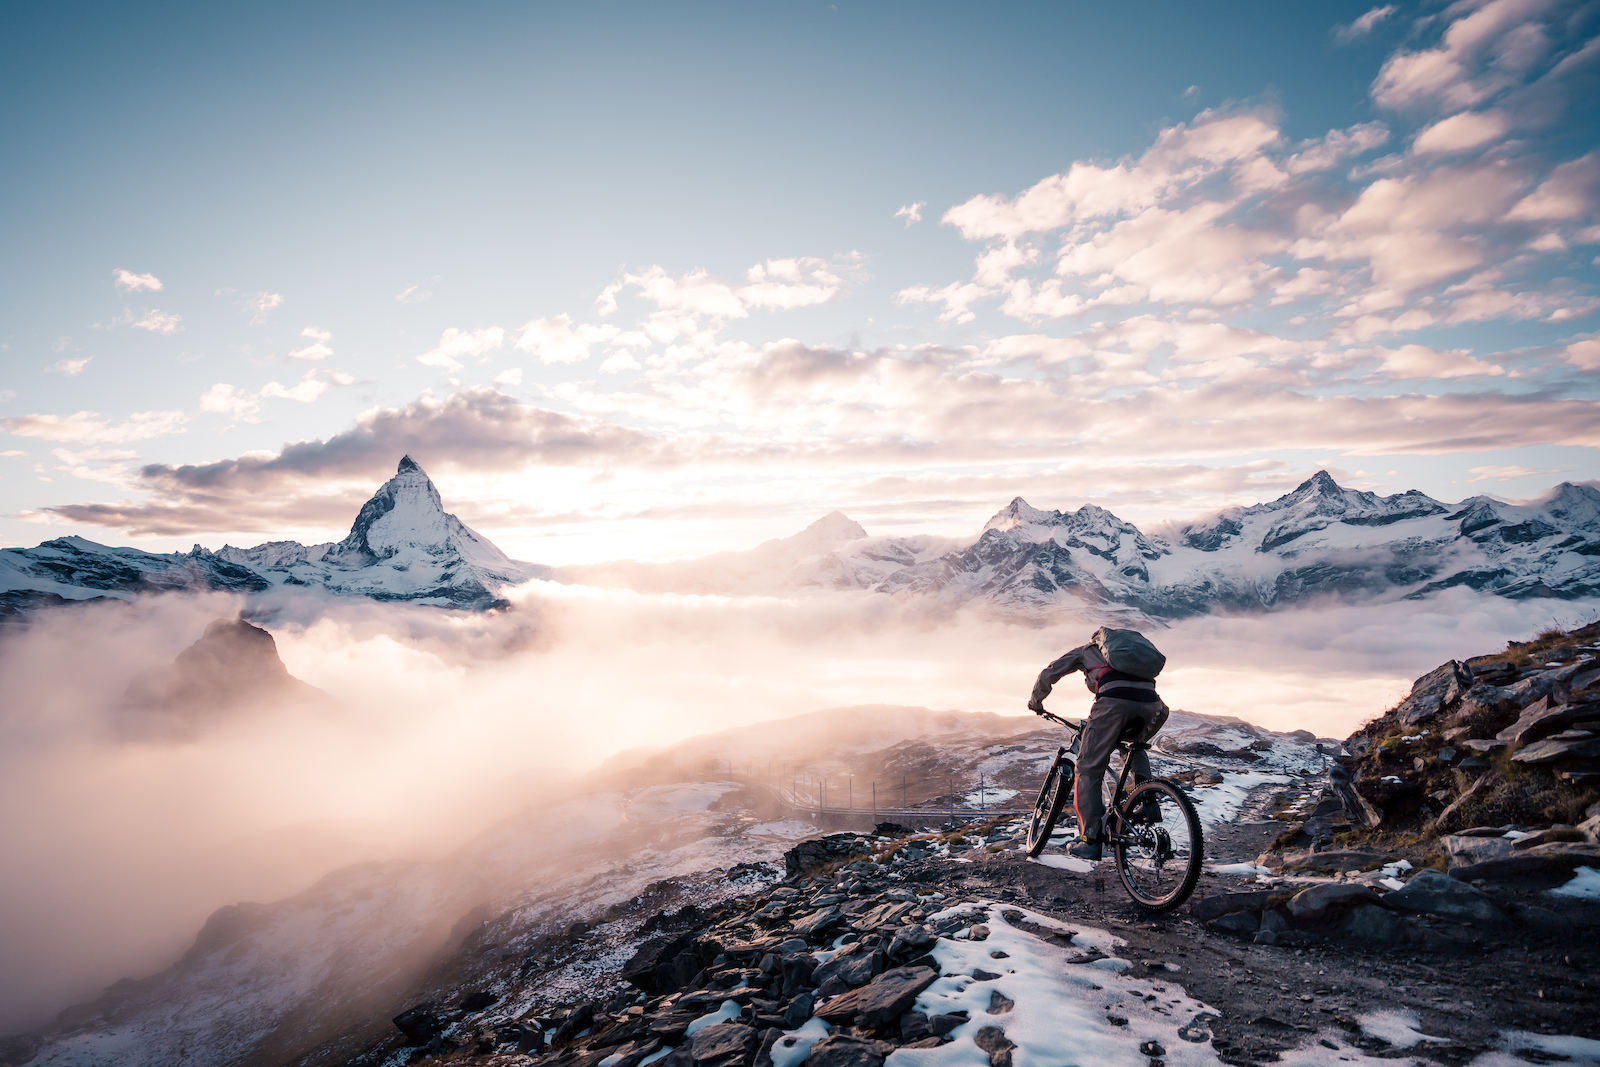 Riding in front of the Matterhorn just after some snowfall at sunset